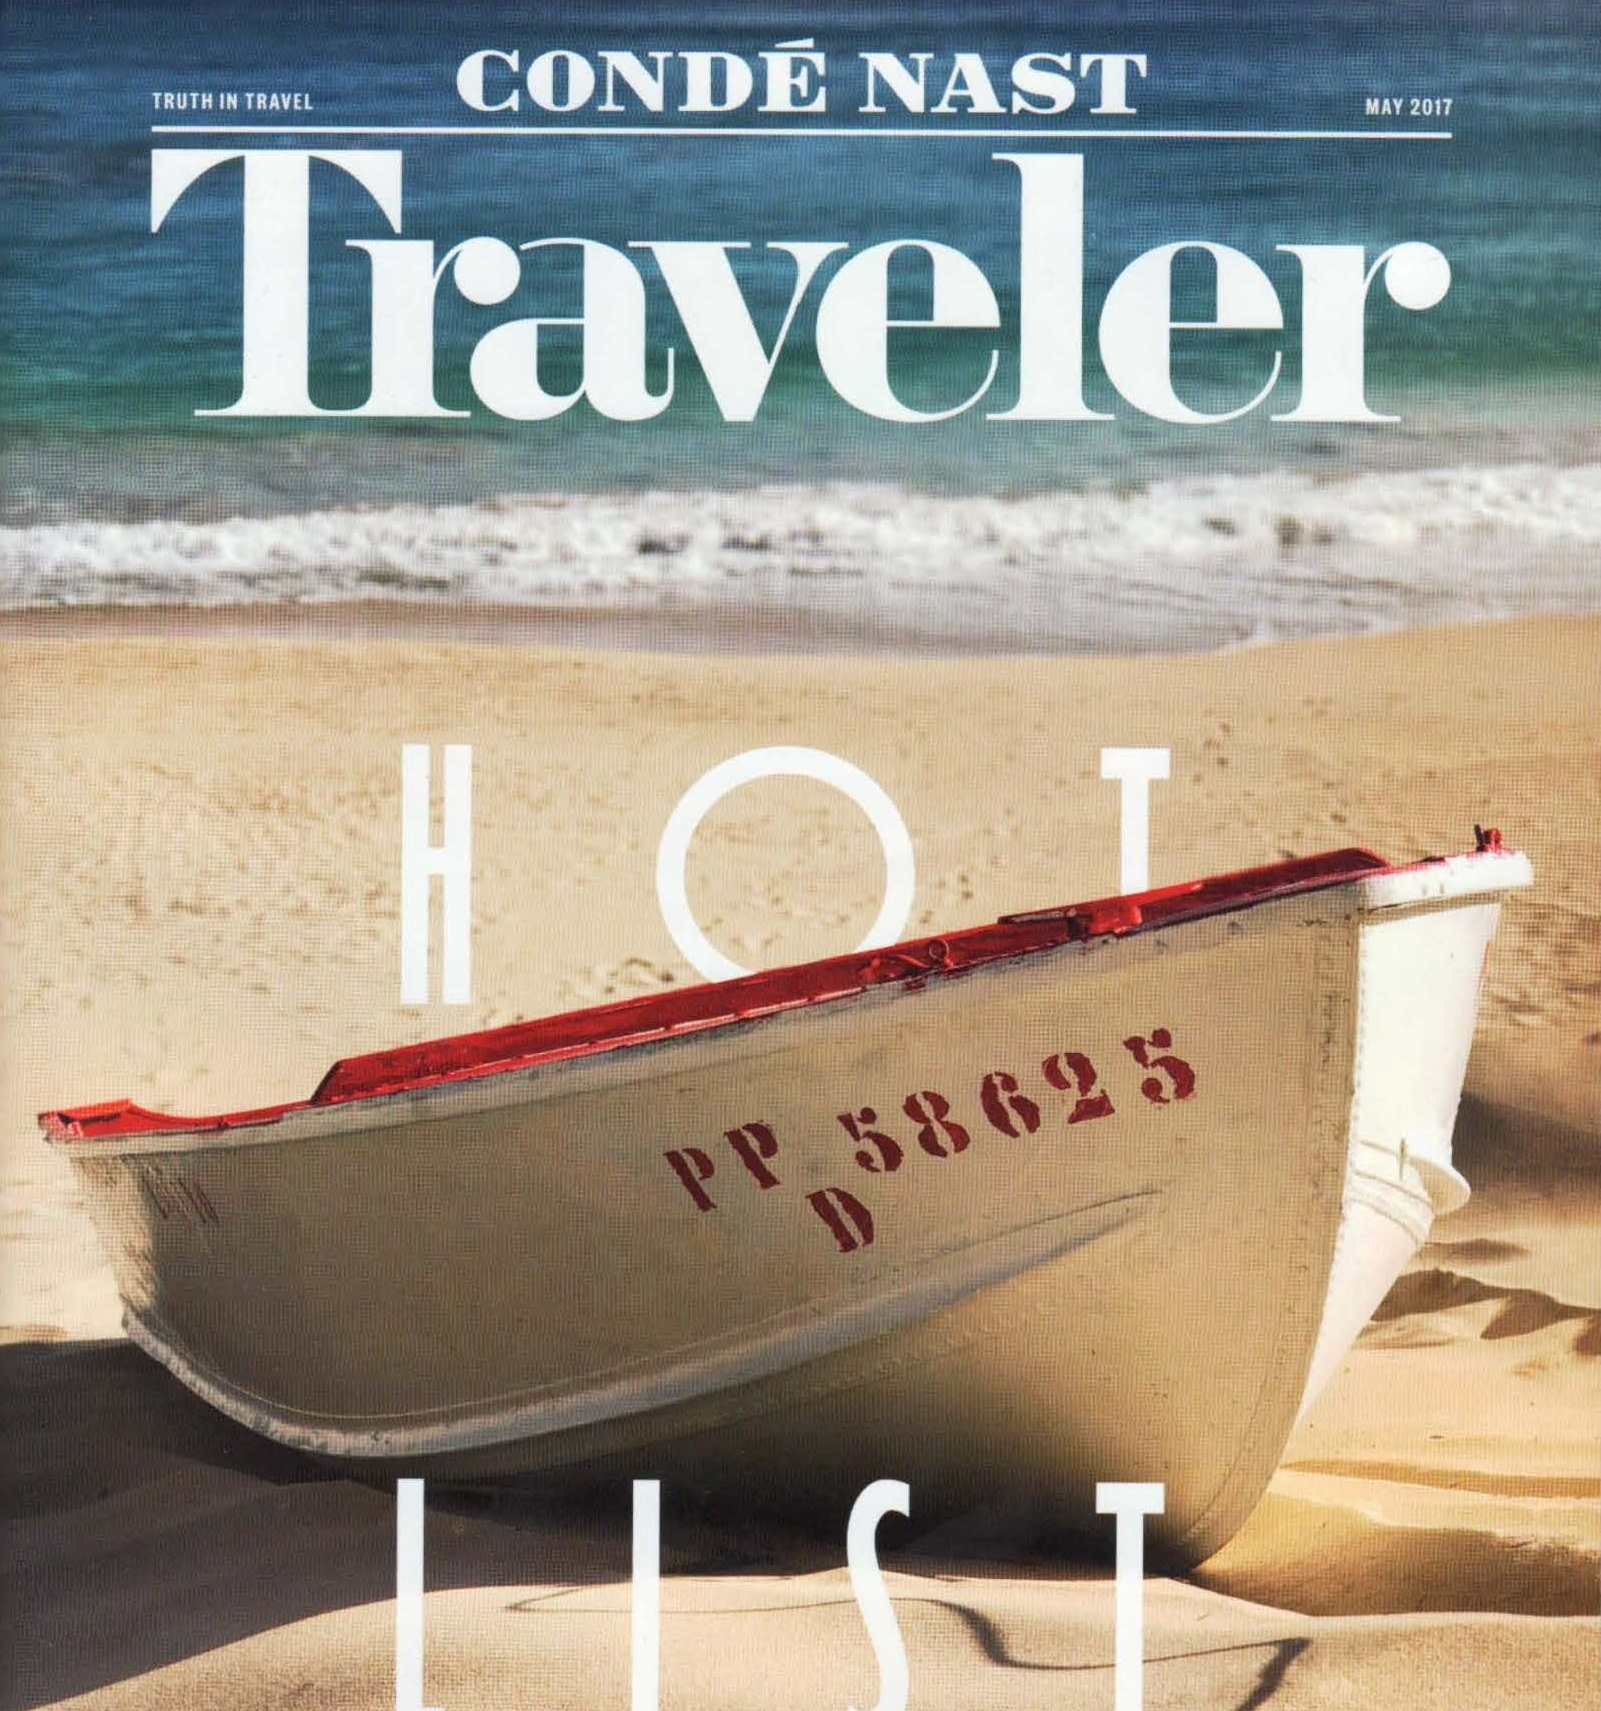 Conde Nast Hot List